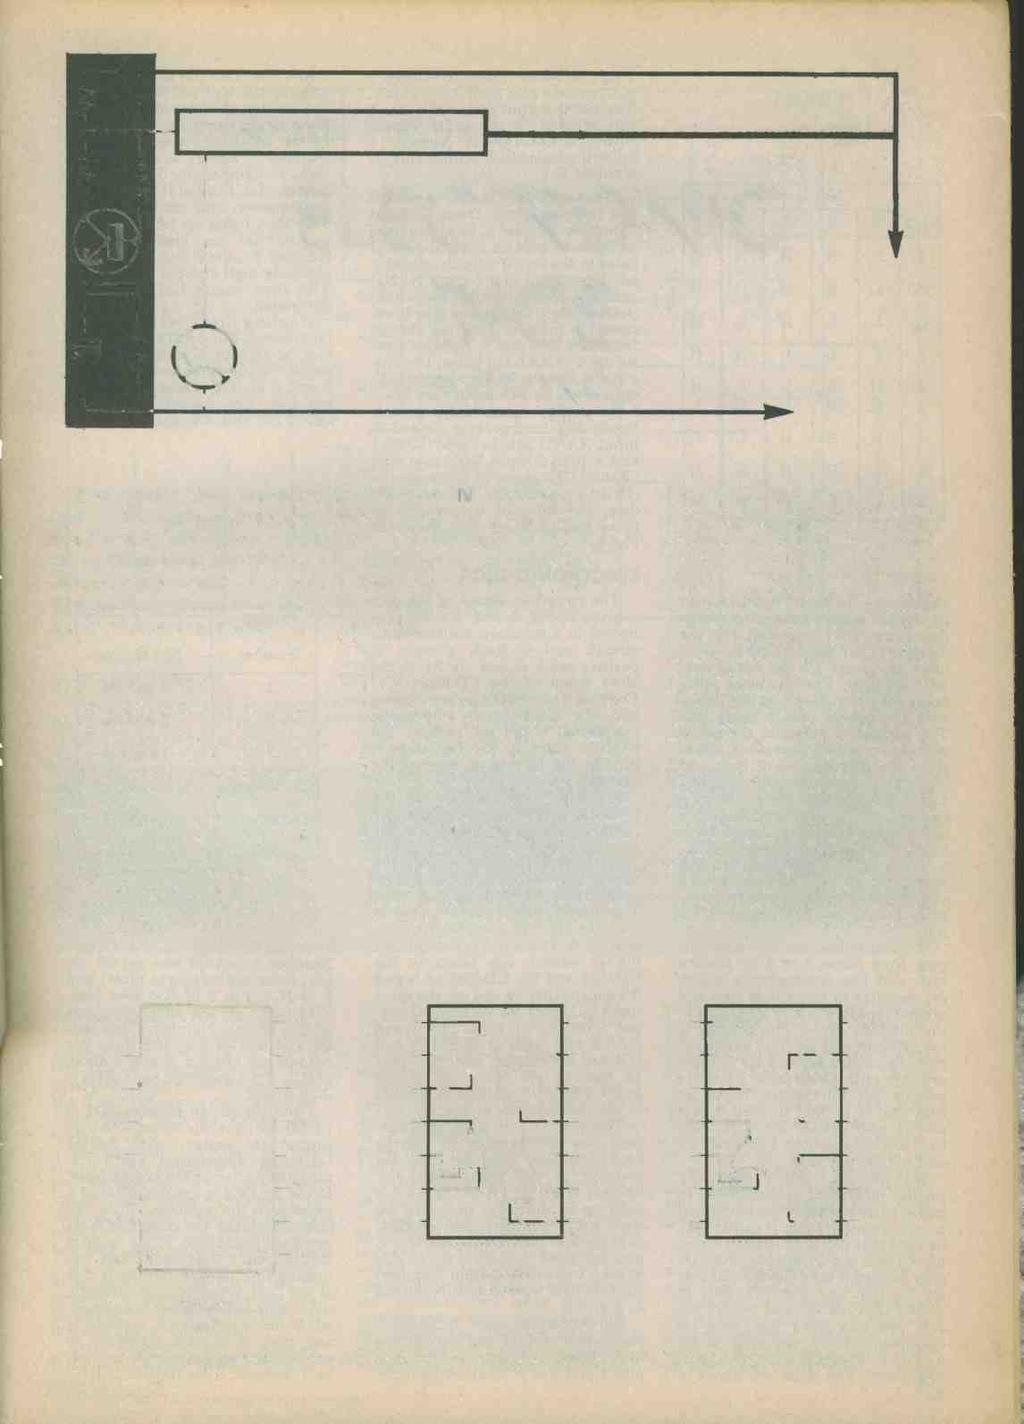 Mediumlong Wave Portable The Casc Also Featured Electronic Di Igh Wiring Diagram For Ec2 With Ls1 Coils Suggested Circuit Ch Dice By G A French Cd4018ae Presettable Divide N